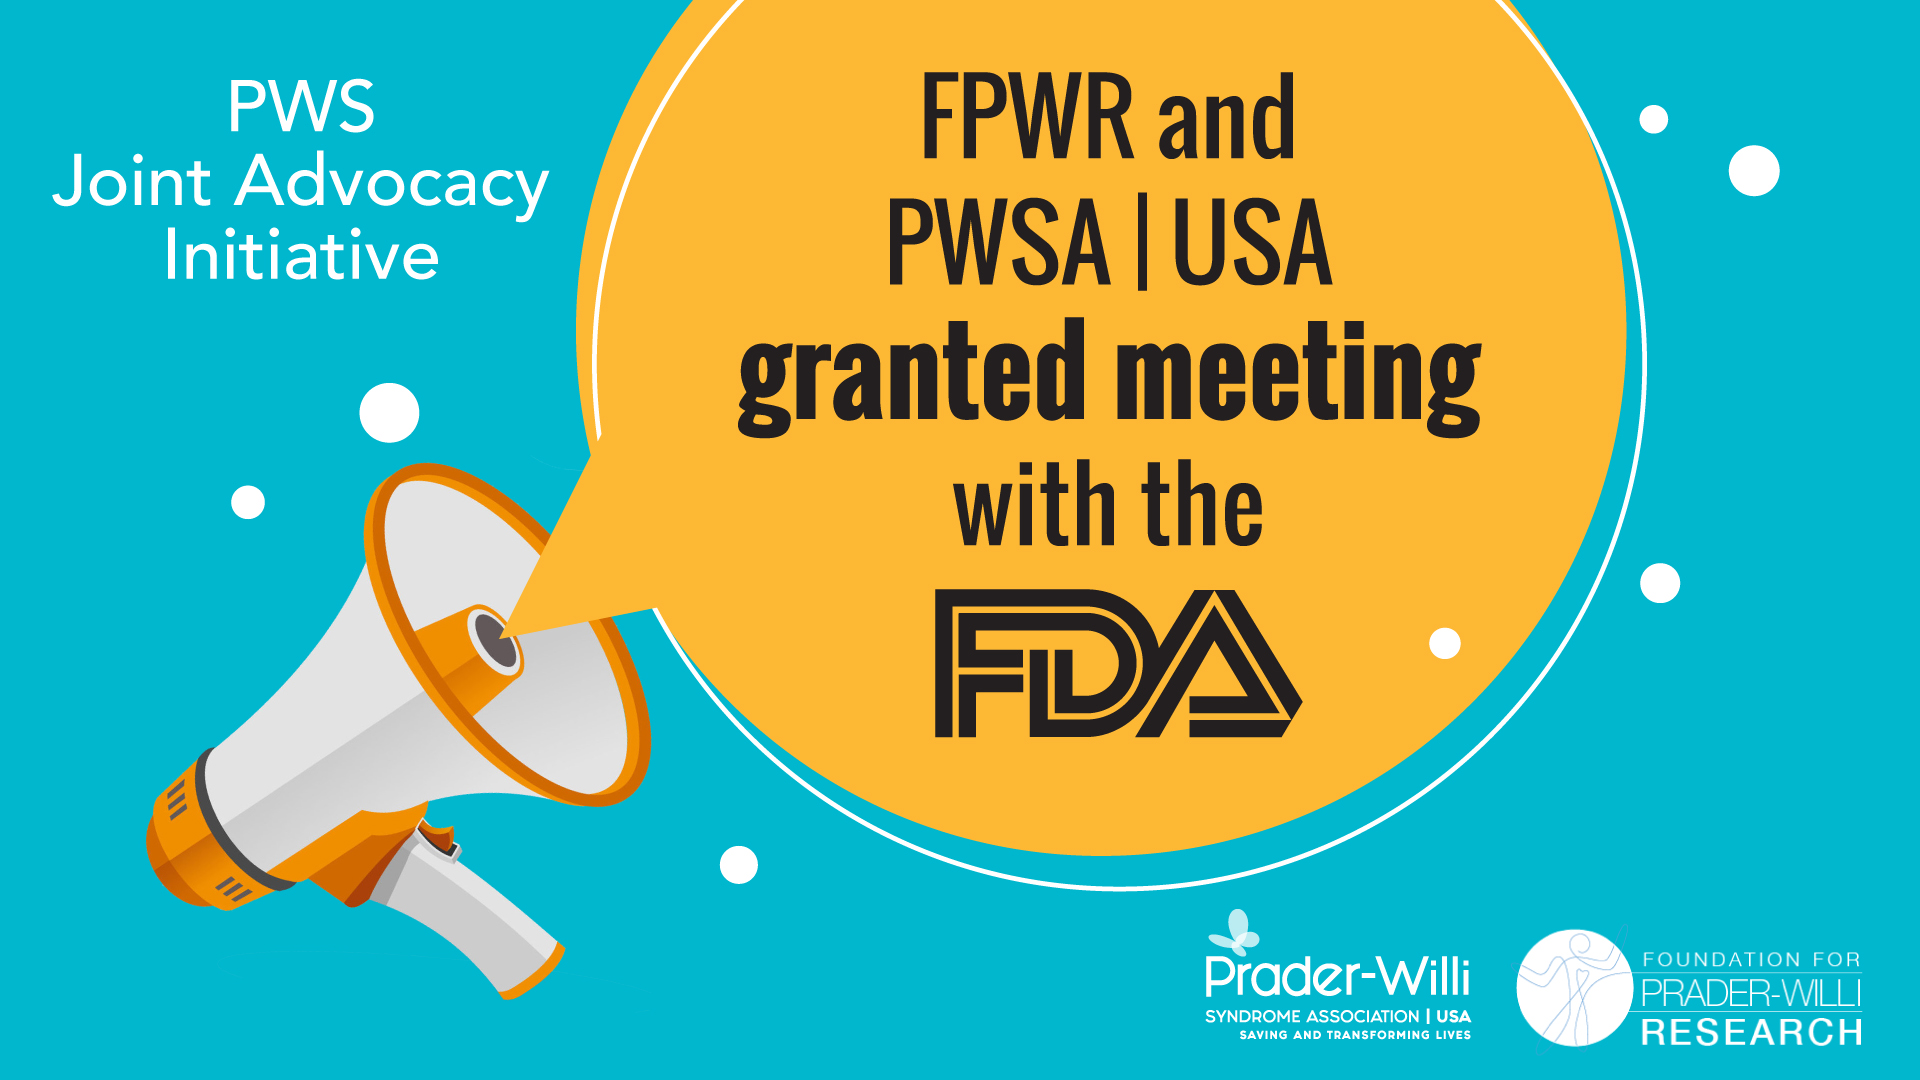 FPWR and PWSA | USA Announce Upcoming Meeting with FDA